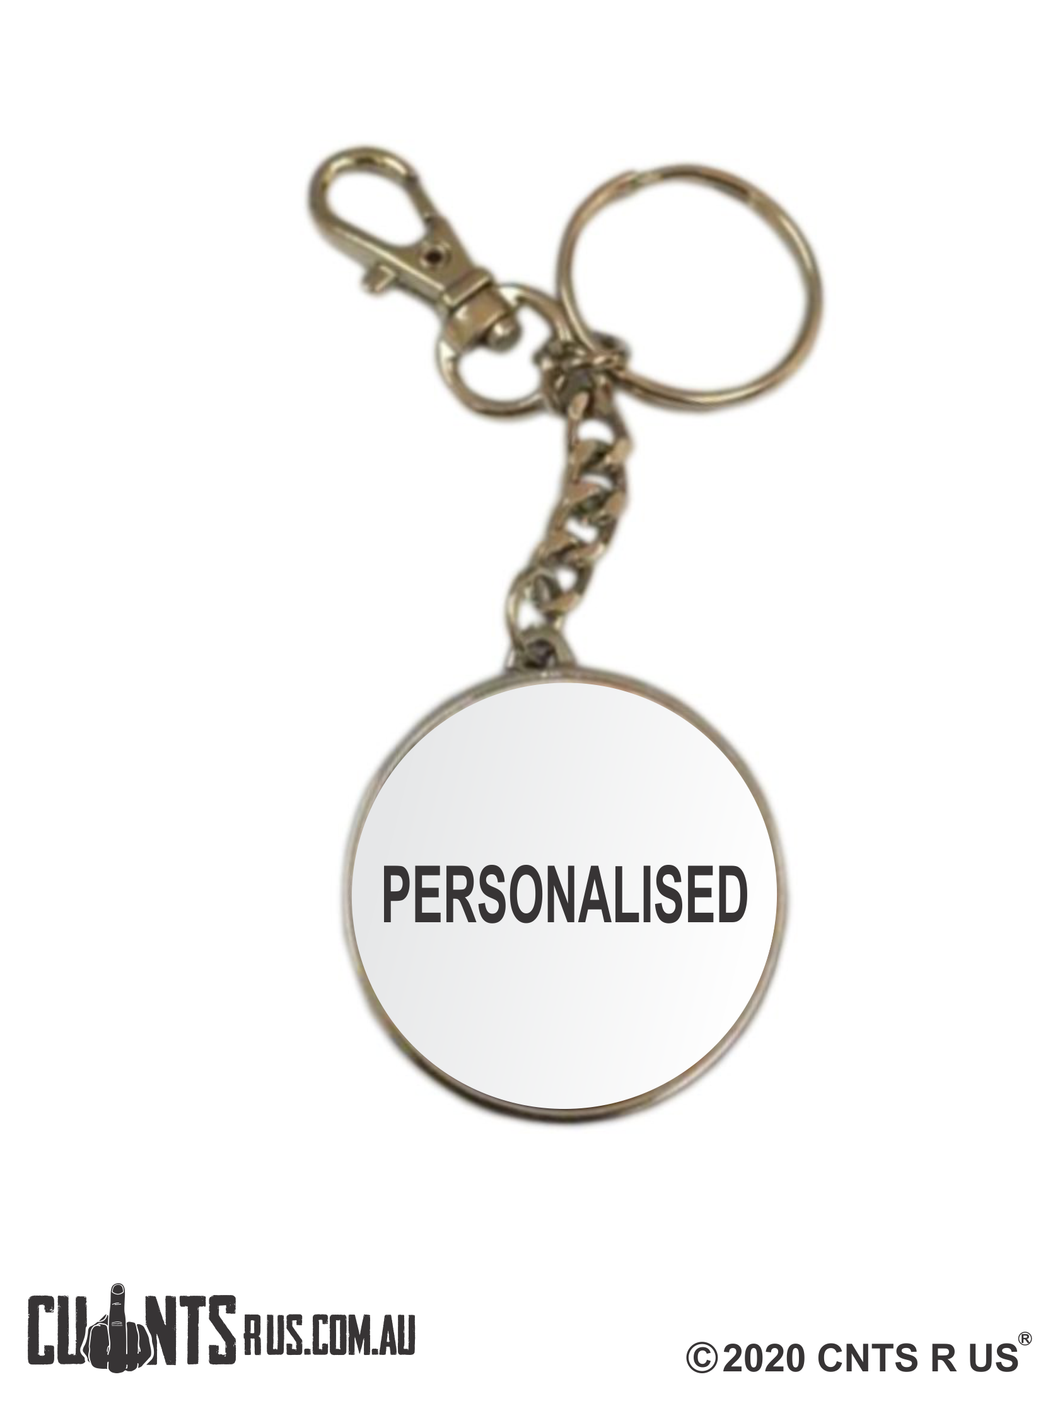 Personalised Classic Double Sided Keyring CRU17-32-51002